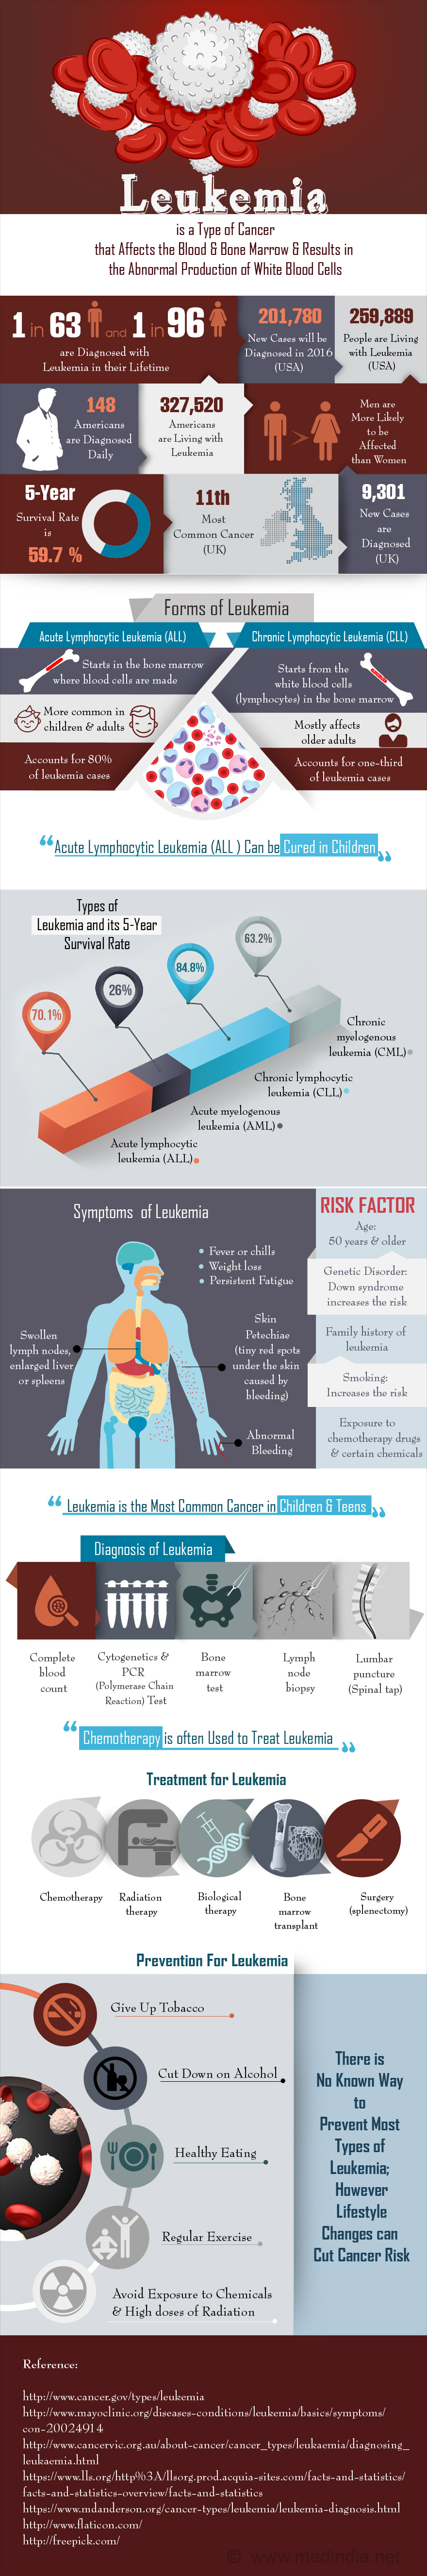 Leukemia - Infographic